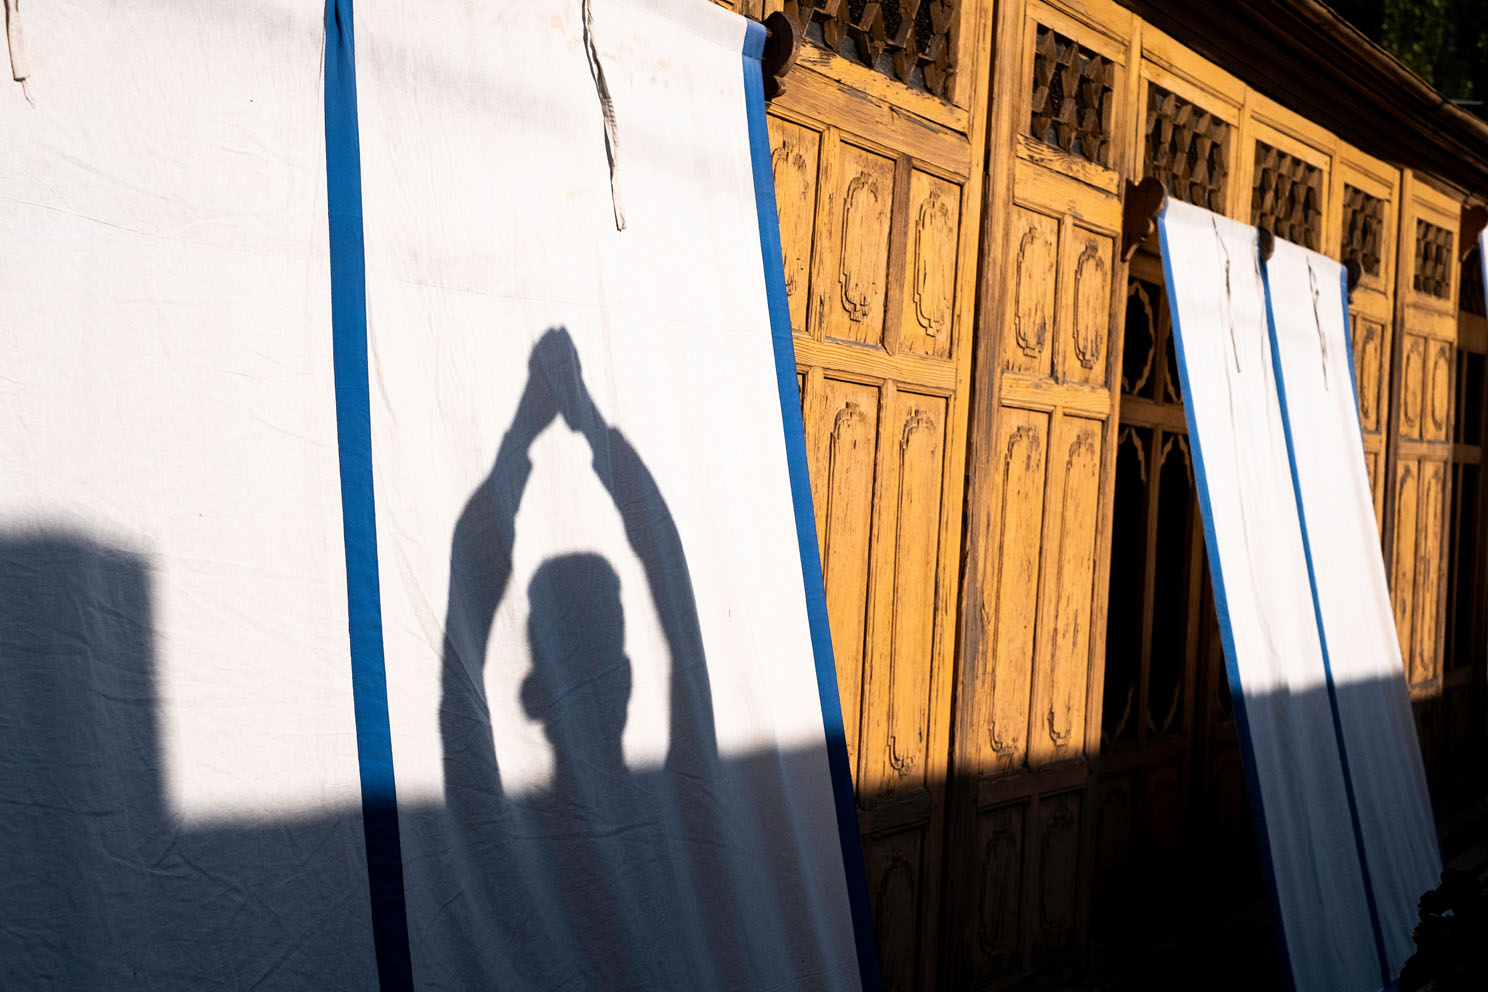 A teenaged Christian boy in Srinagar, India folds his hands in prayer in the afternoon sun. In the 99.5% Muslim state of Kashmir, he stated that all of his friends were devout Muslims, and that Christians in the area must meet in secret to avoid death and arrest by the religious police. (Name and identity has been withheld for the subject's safety). Srinagar, Kashmir, India. 2018. Photo: John Fredricks